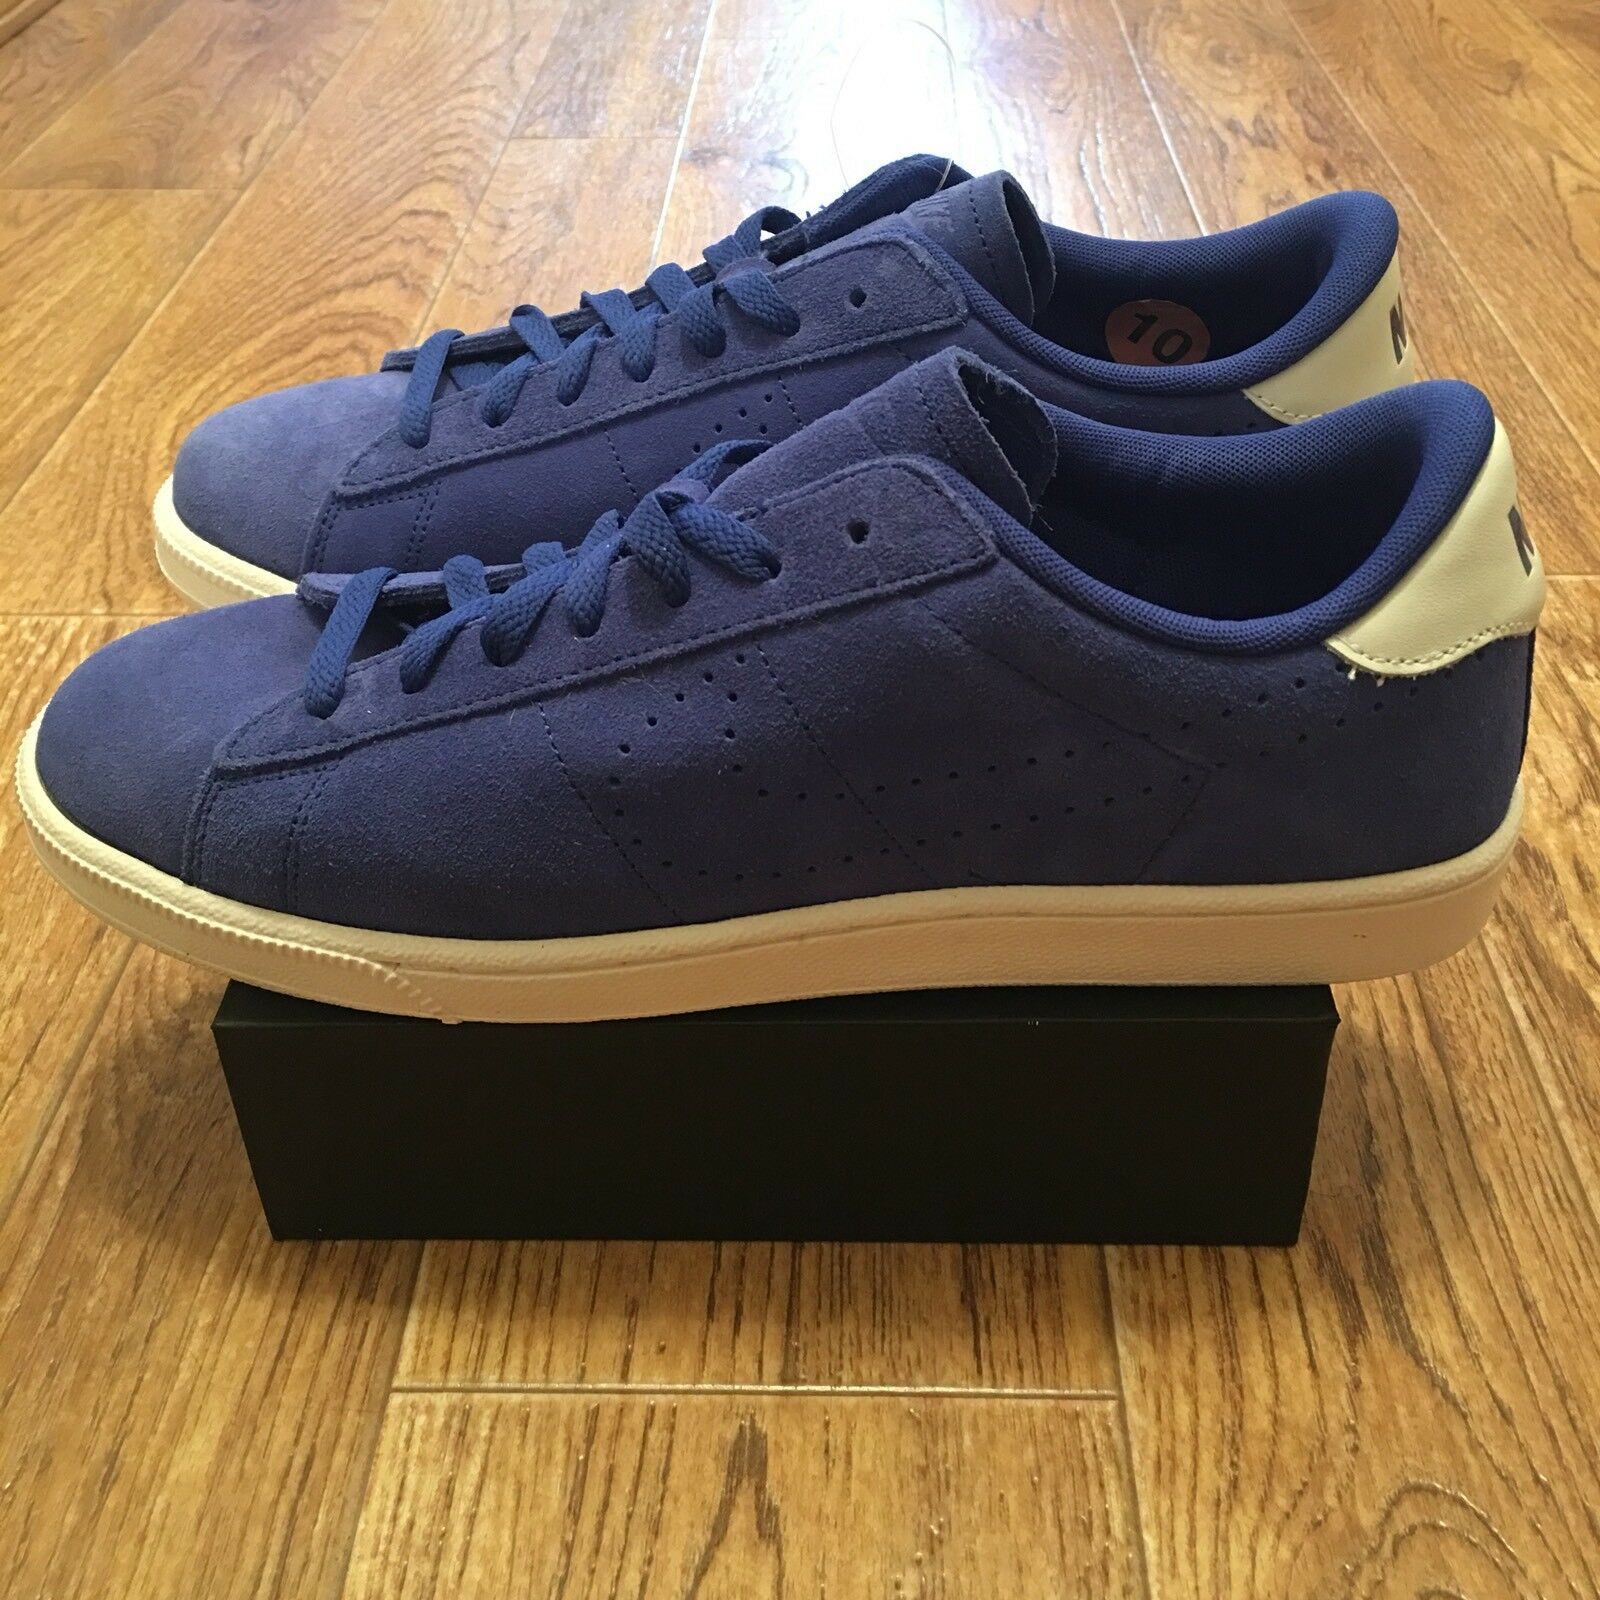 Nike Men TENNIS CLASSIC CS SUEDE Sneaker shoes 829351 400 bluee Size 10